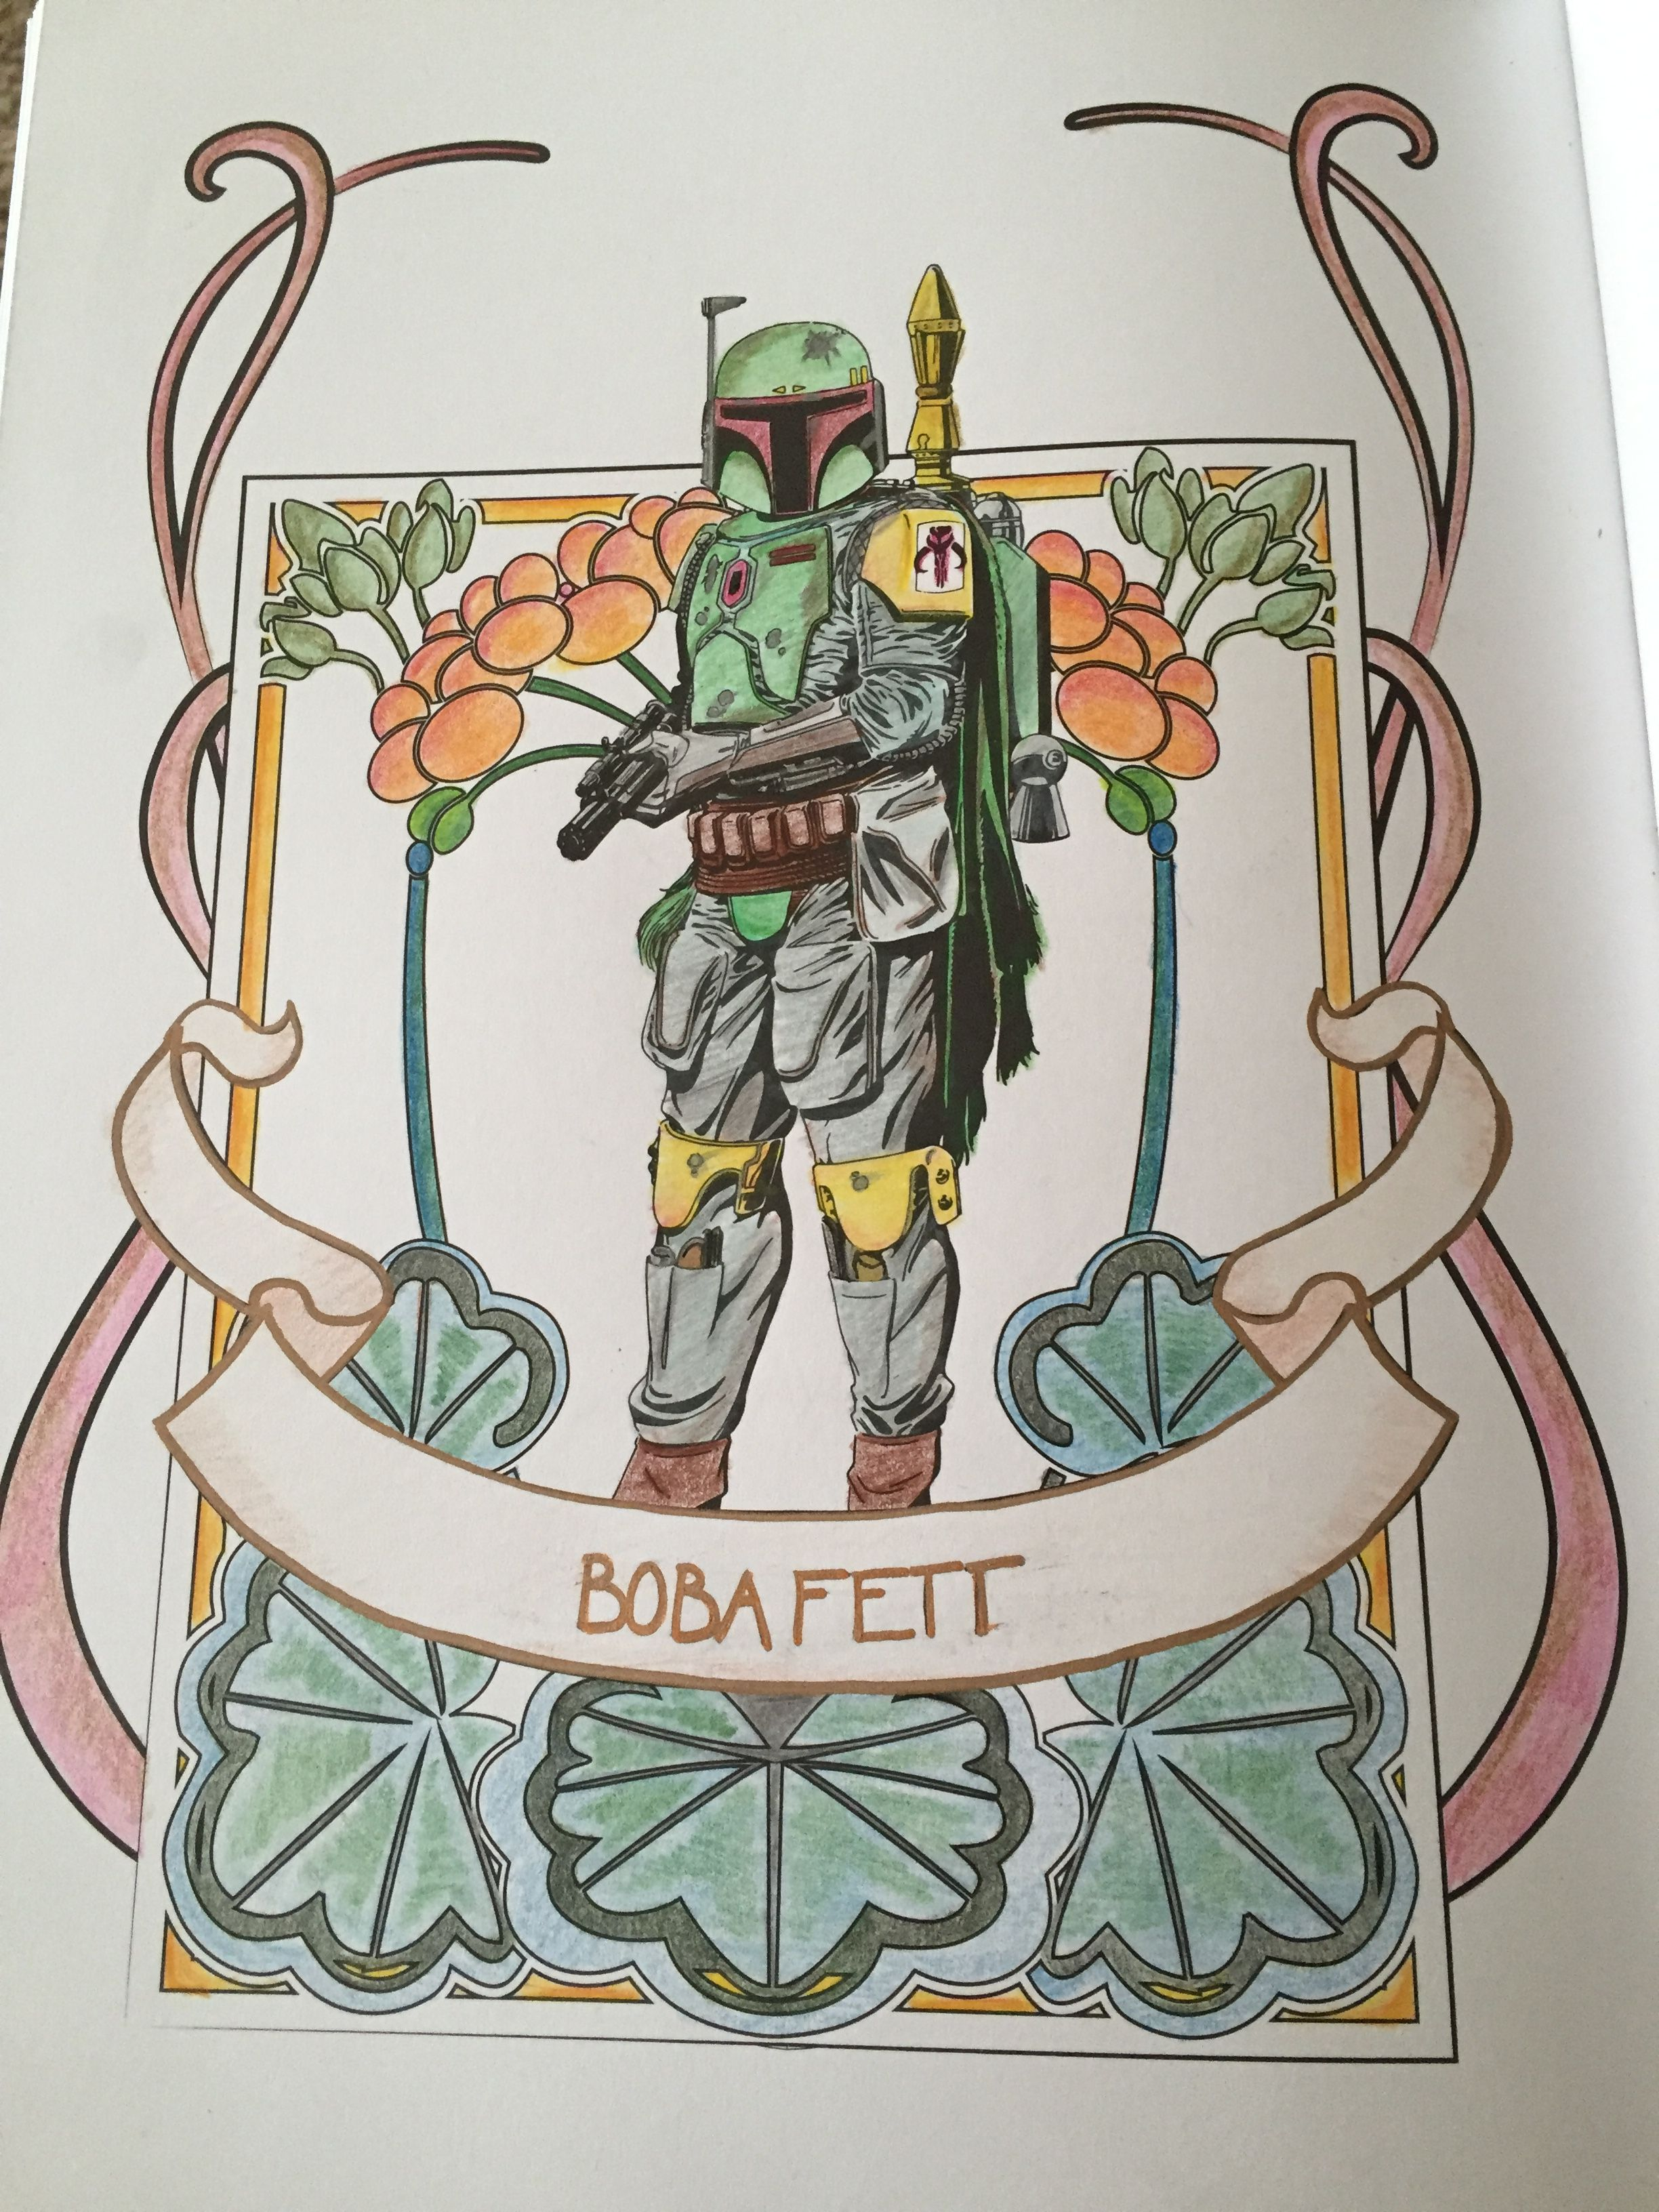 BOBA FETT Probably my best attempt at shading with pencils